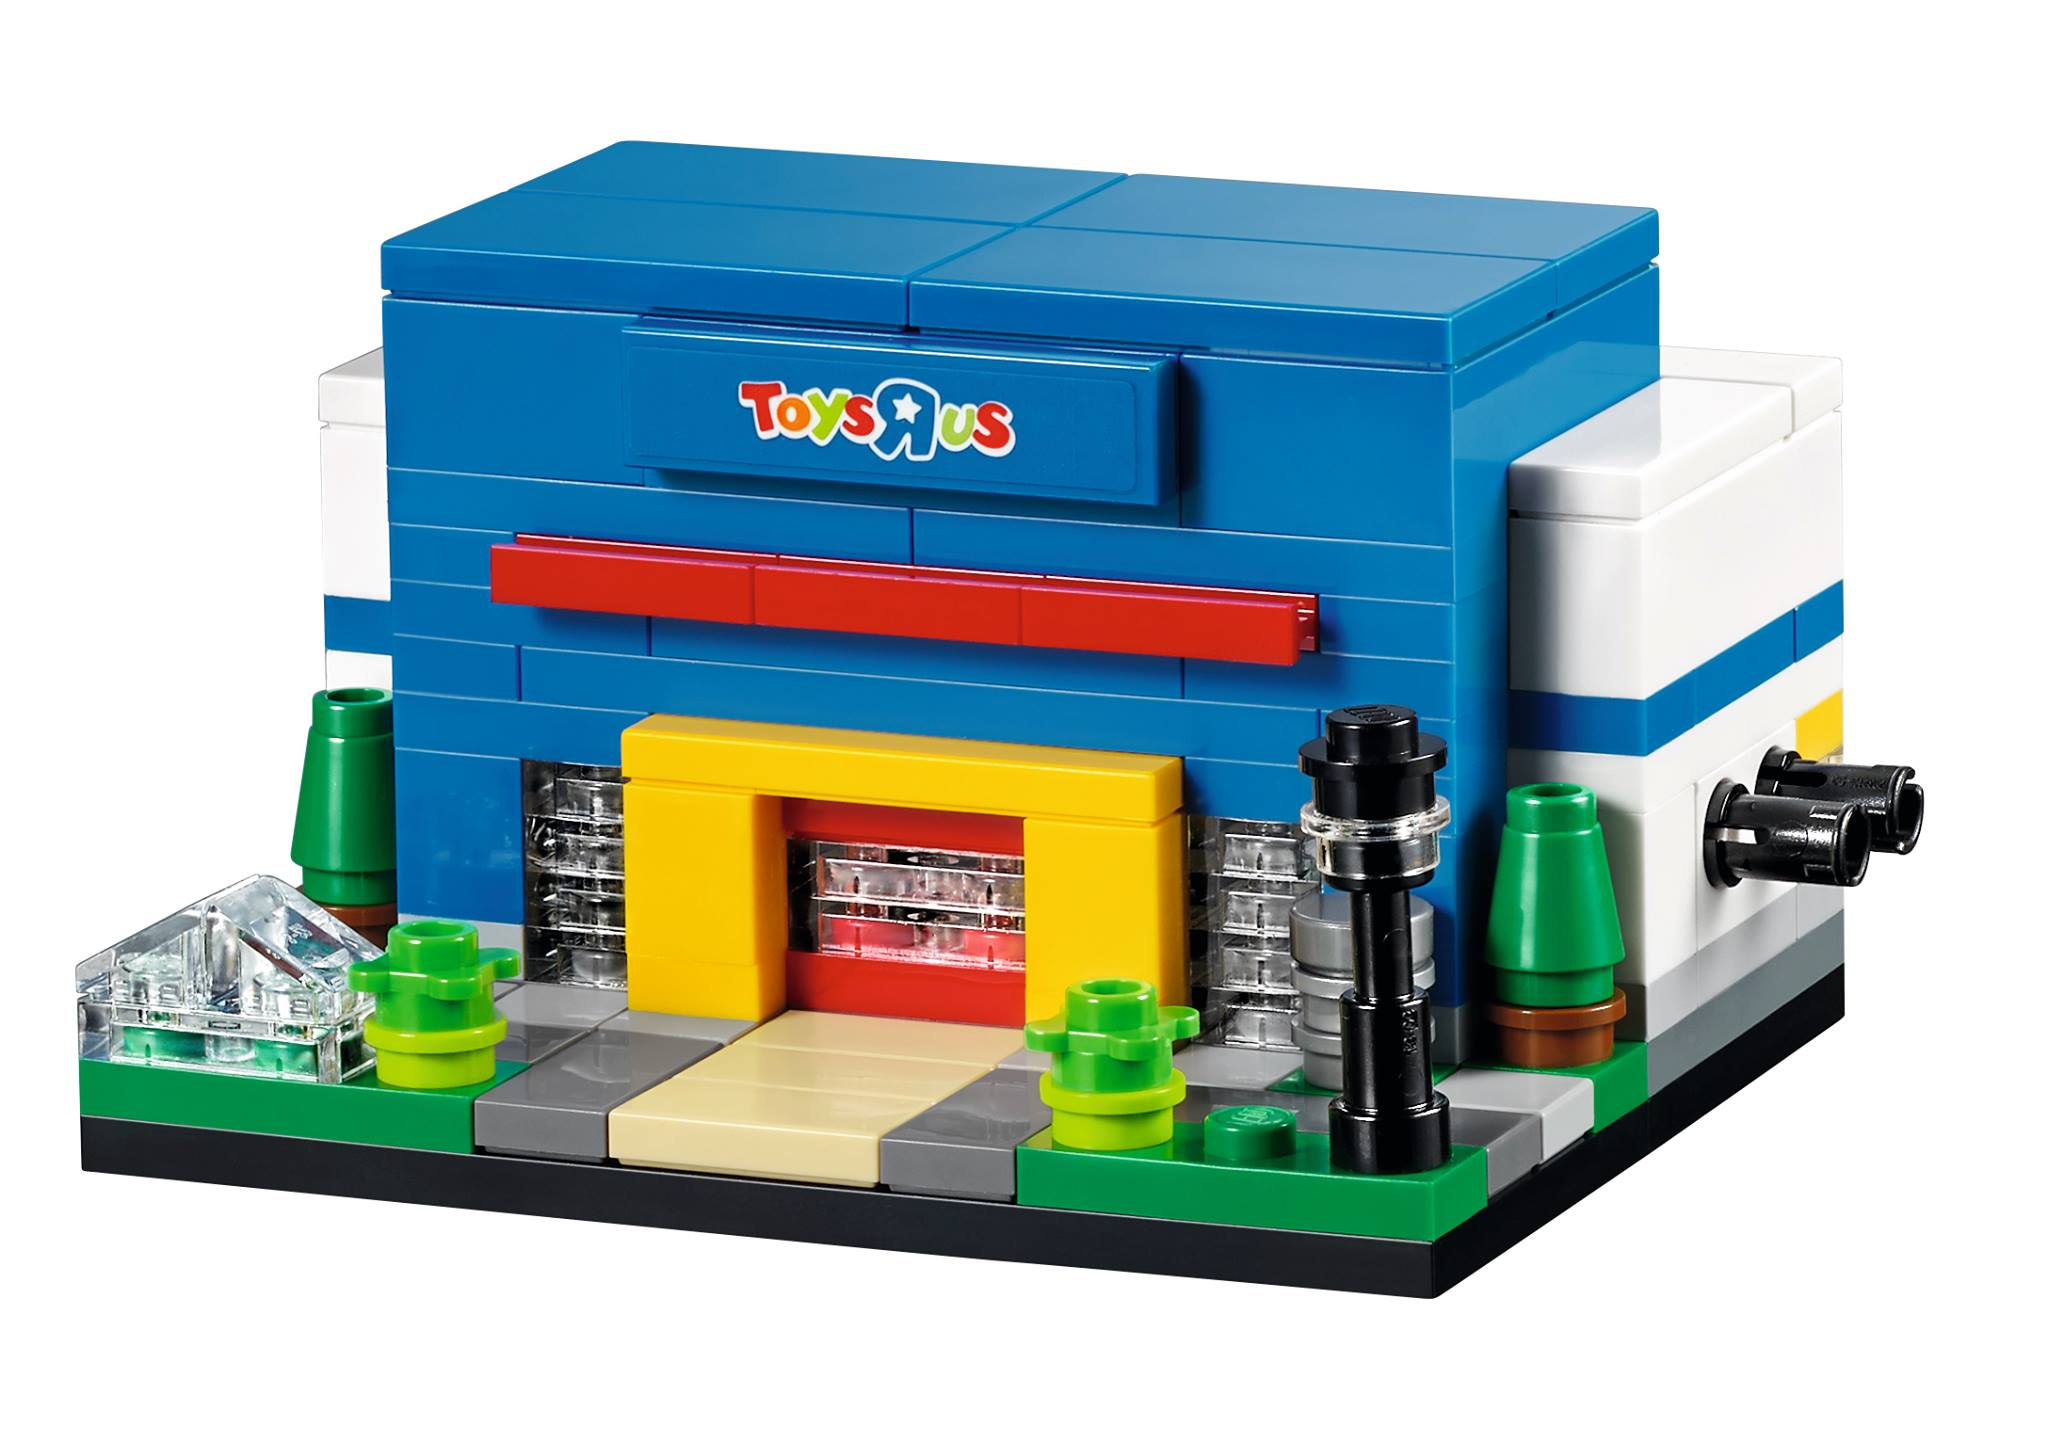 Lego Sets At Toys R Us : Lego bricktober sets revealed mini modular buildings